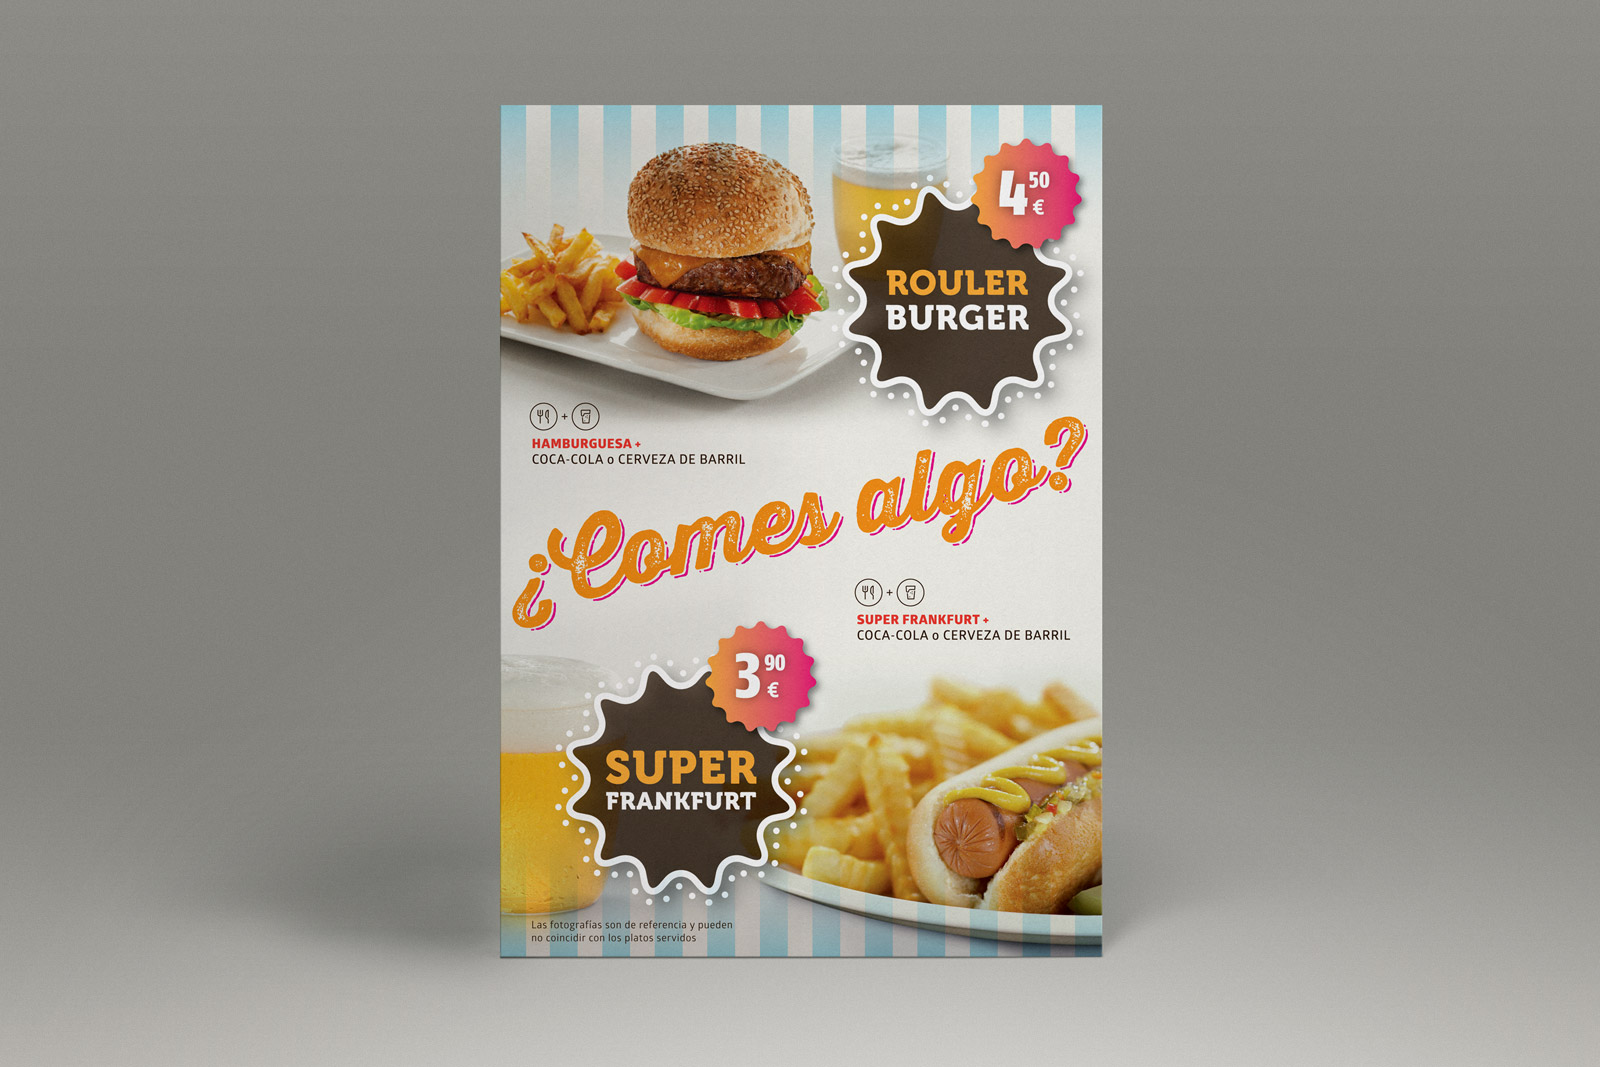 promotional material cirsa flyer burguer